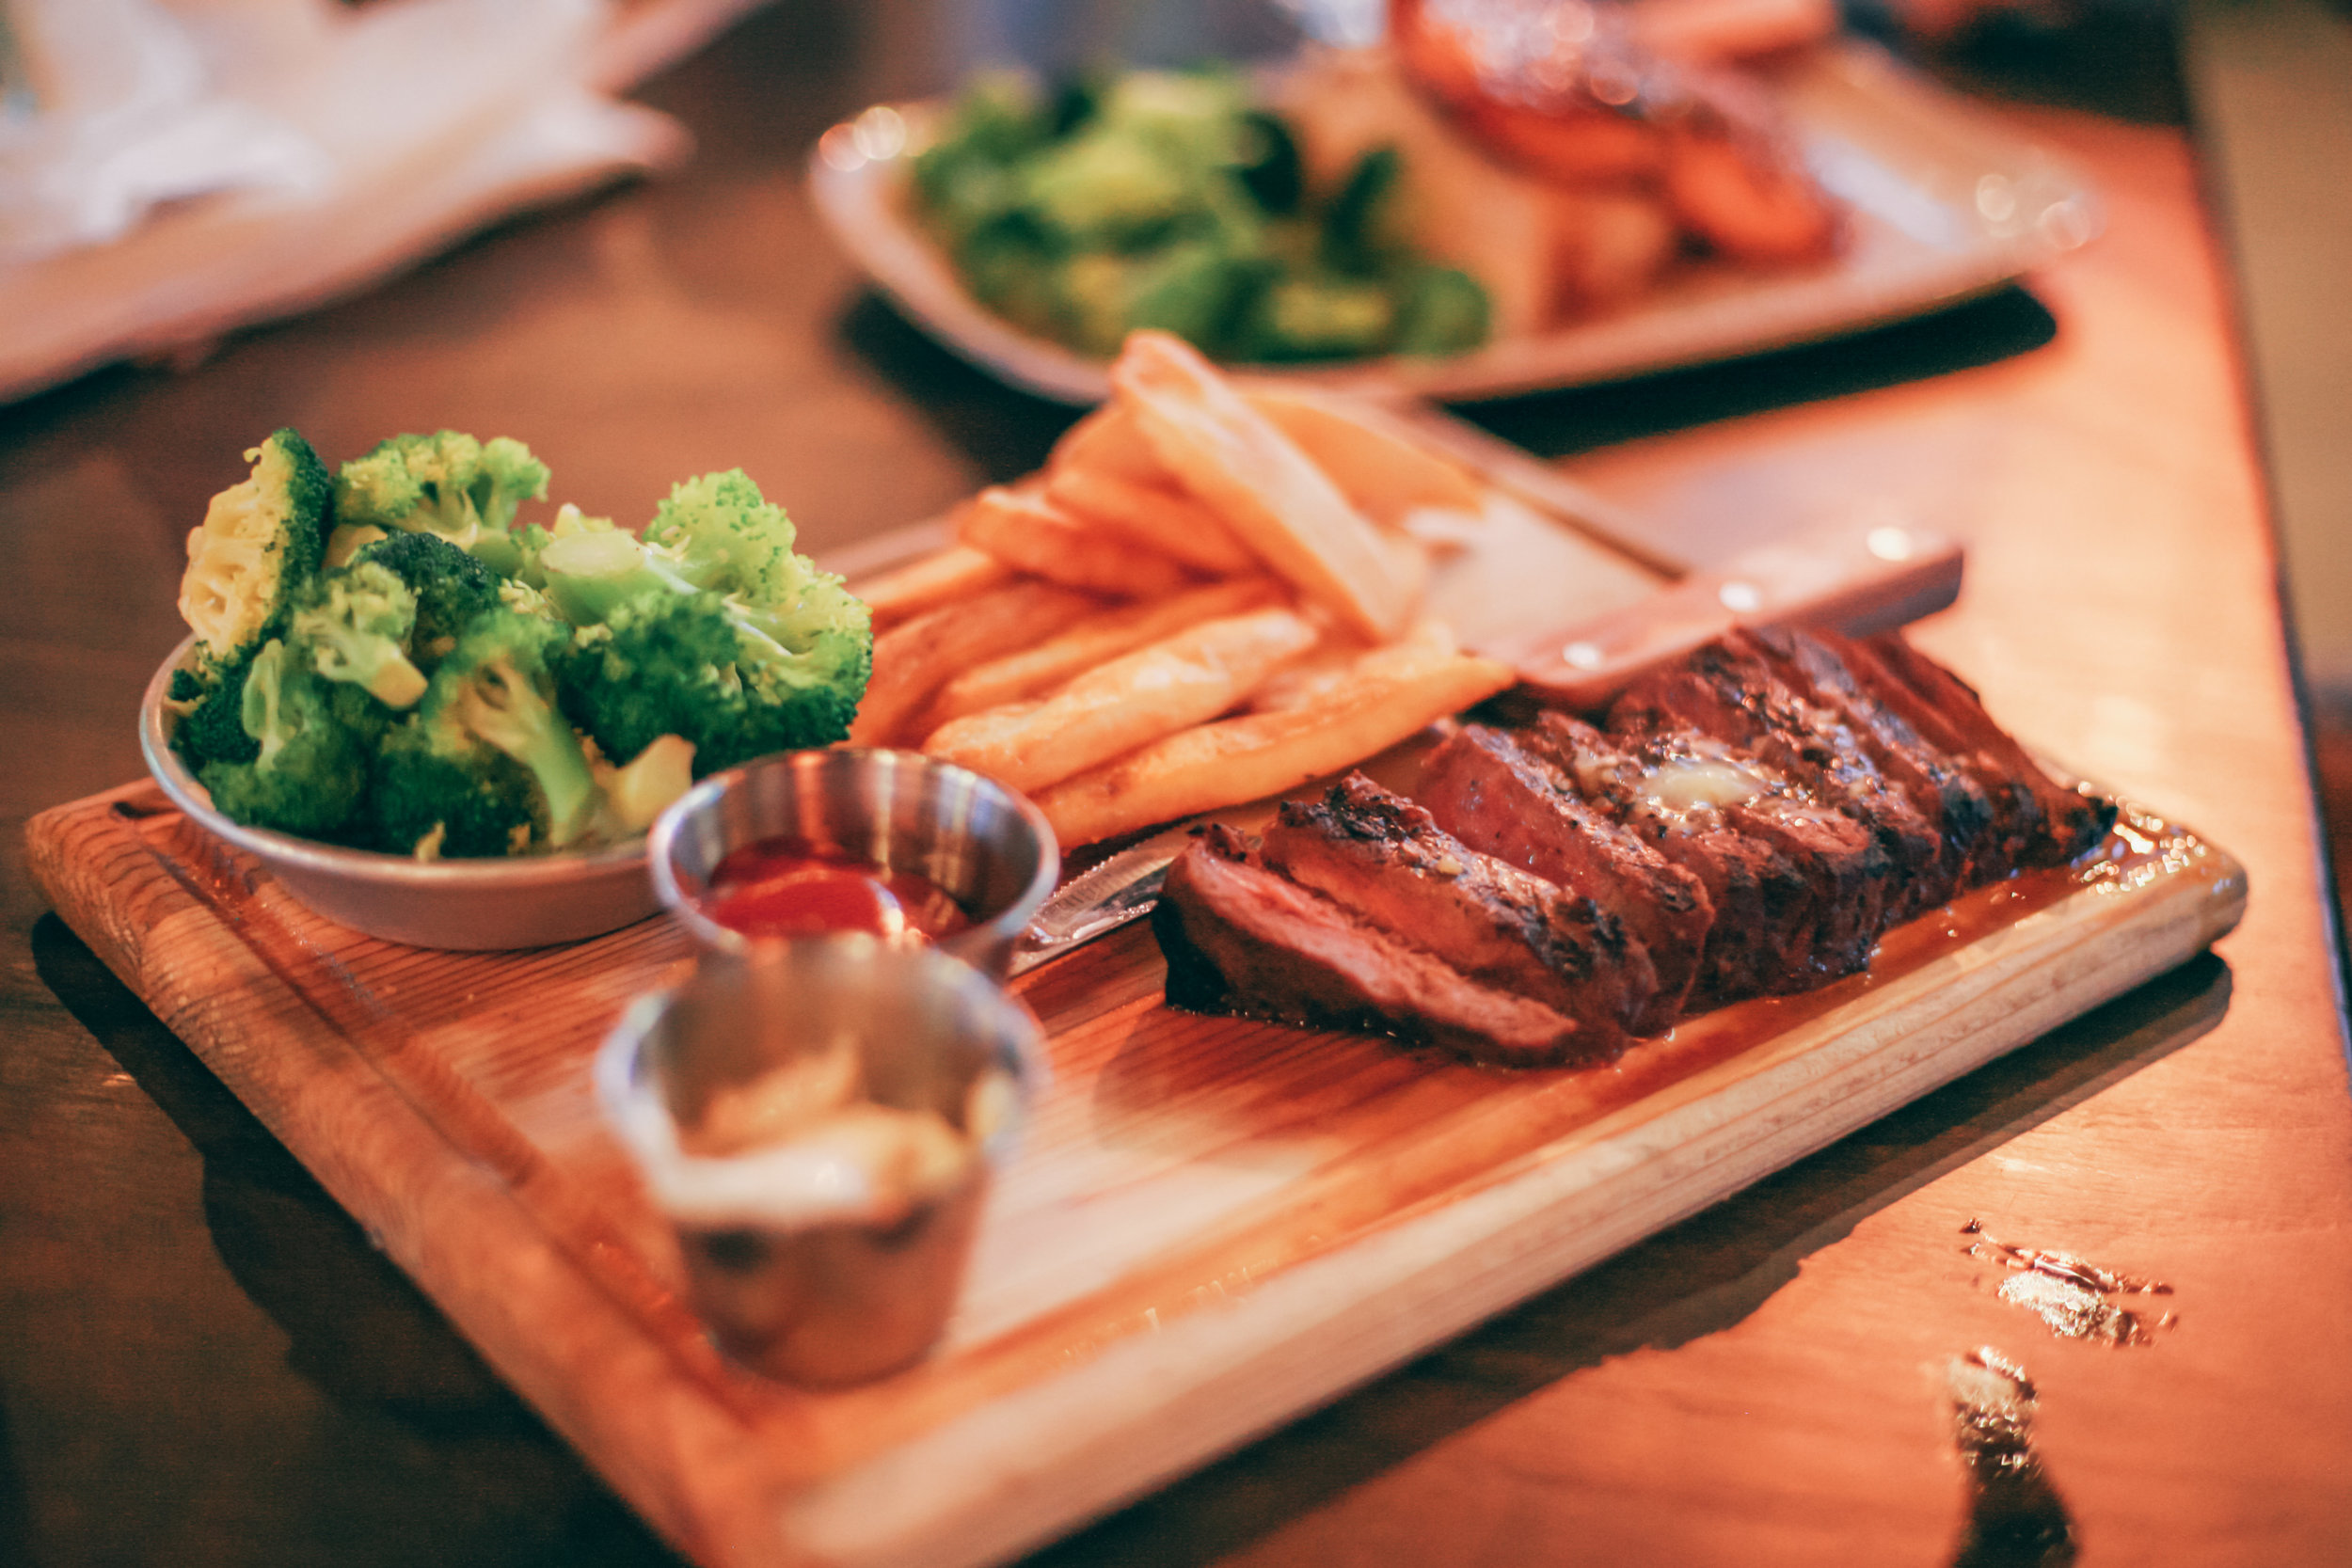 Steak Frites:Marinated flat-iron steak grilled & thinly sliced, served with steamed broccoli, fries & garlic aioli for dipping.